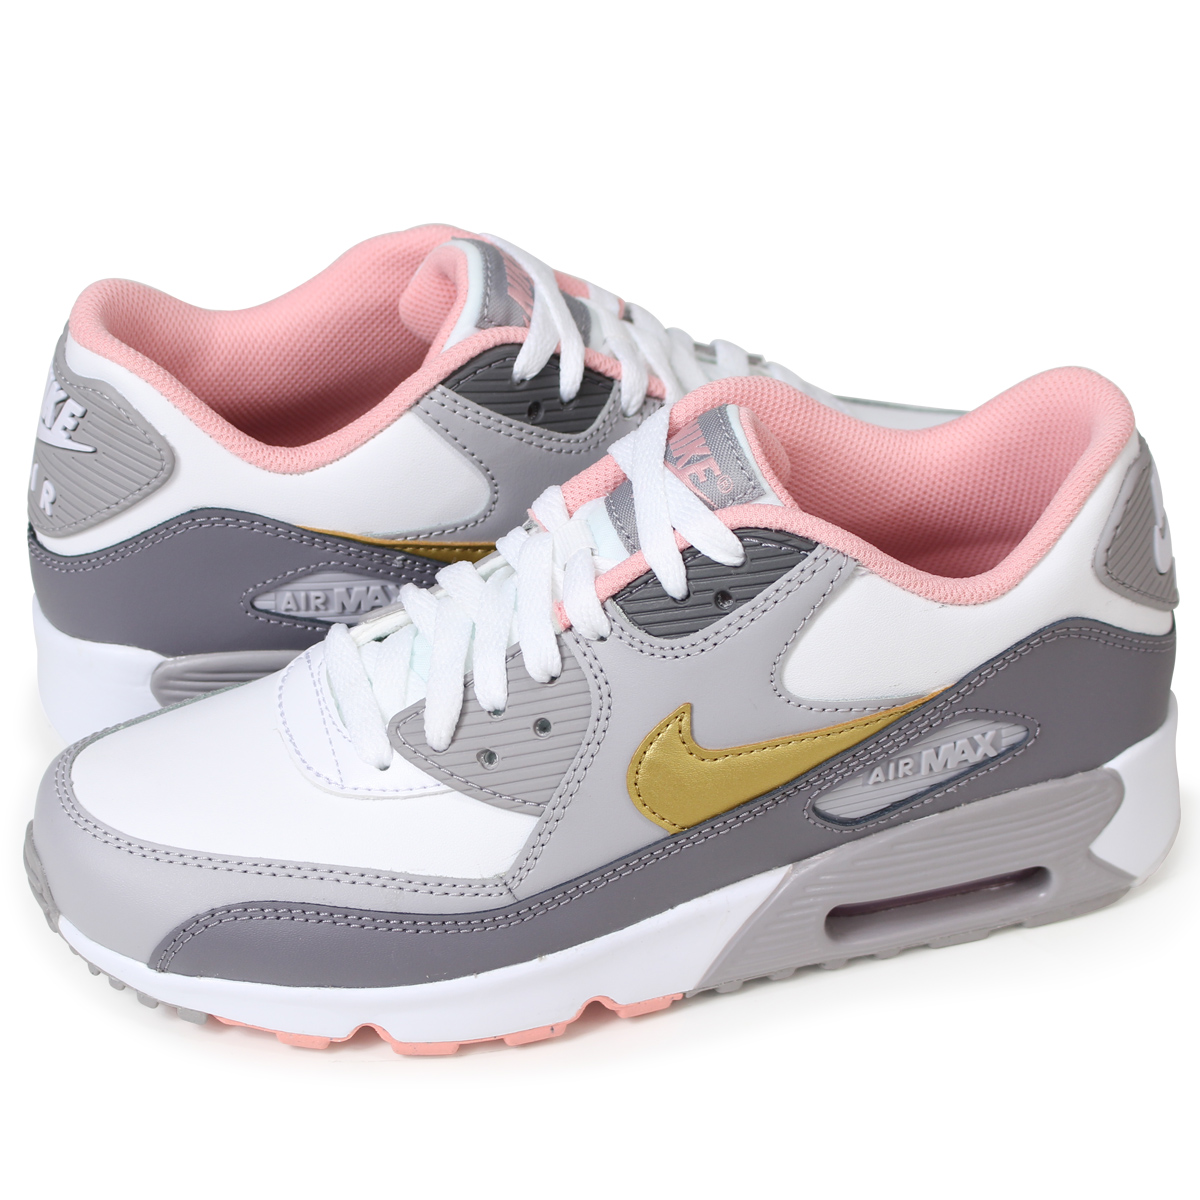 NIKE AIR MAX 90 LEATHER GS Kie Ney AMAX 90 Lady's sneakers 833,376 011 gray [512 Shinnyu load]